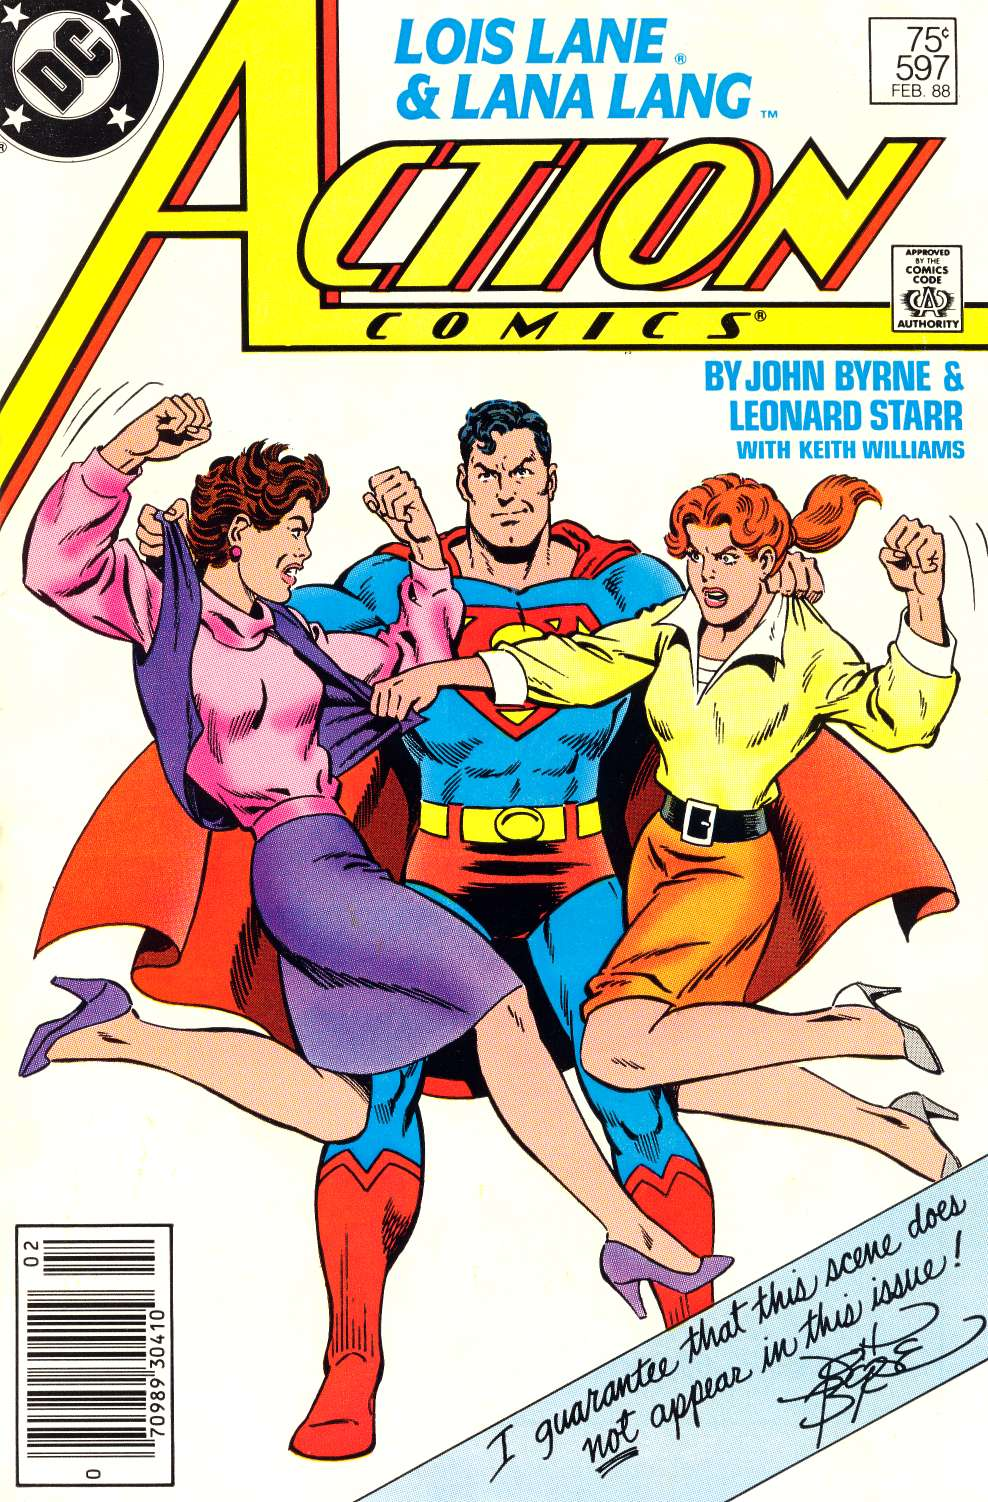 Read online Action Comics (1938) comic -  Issue #597 - 1